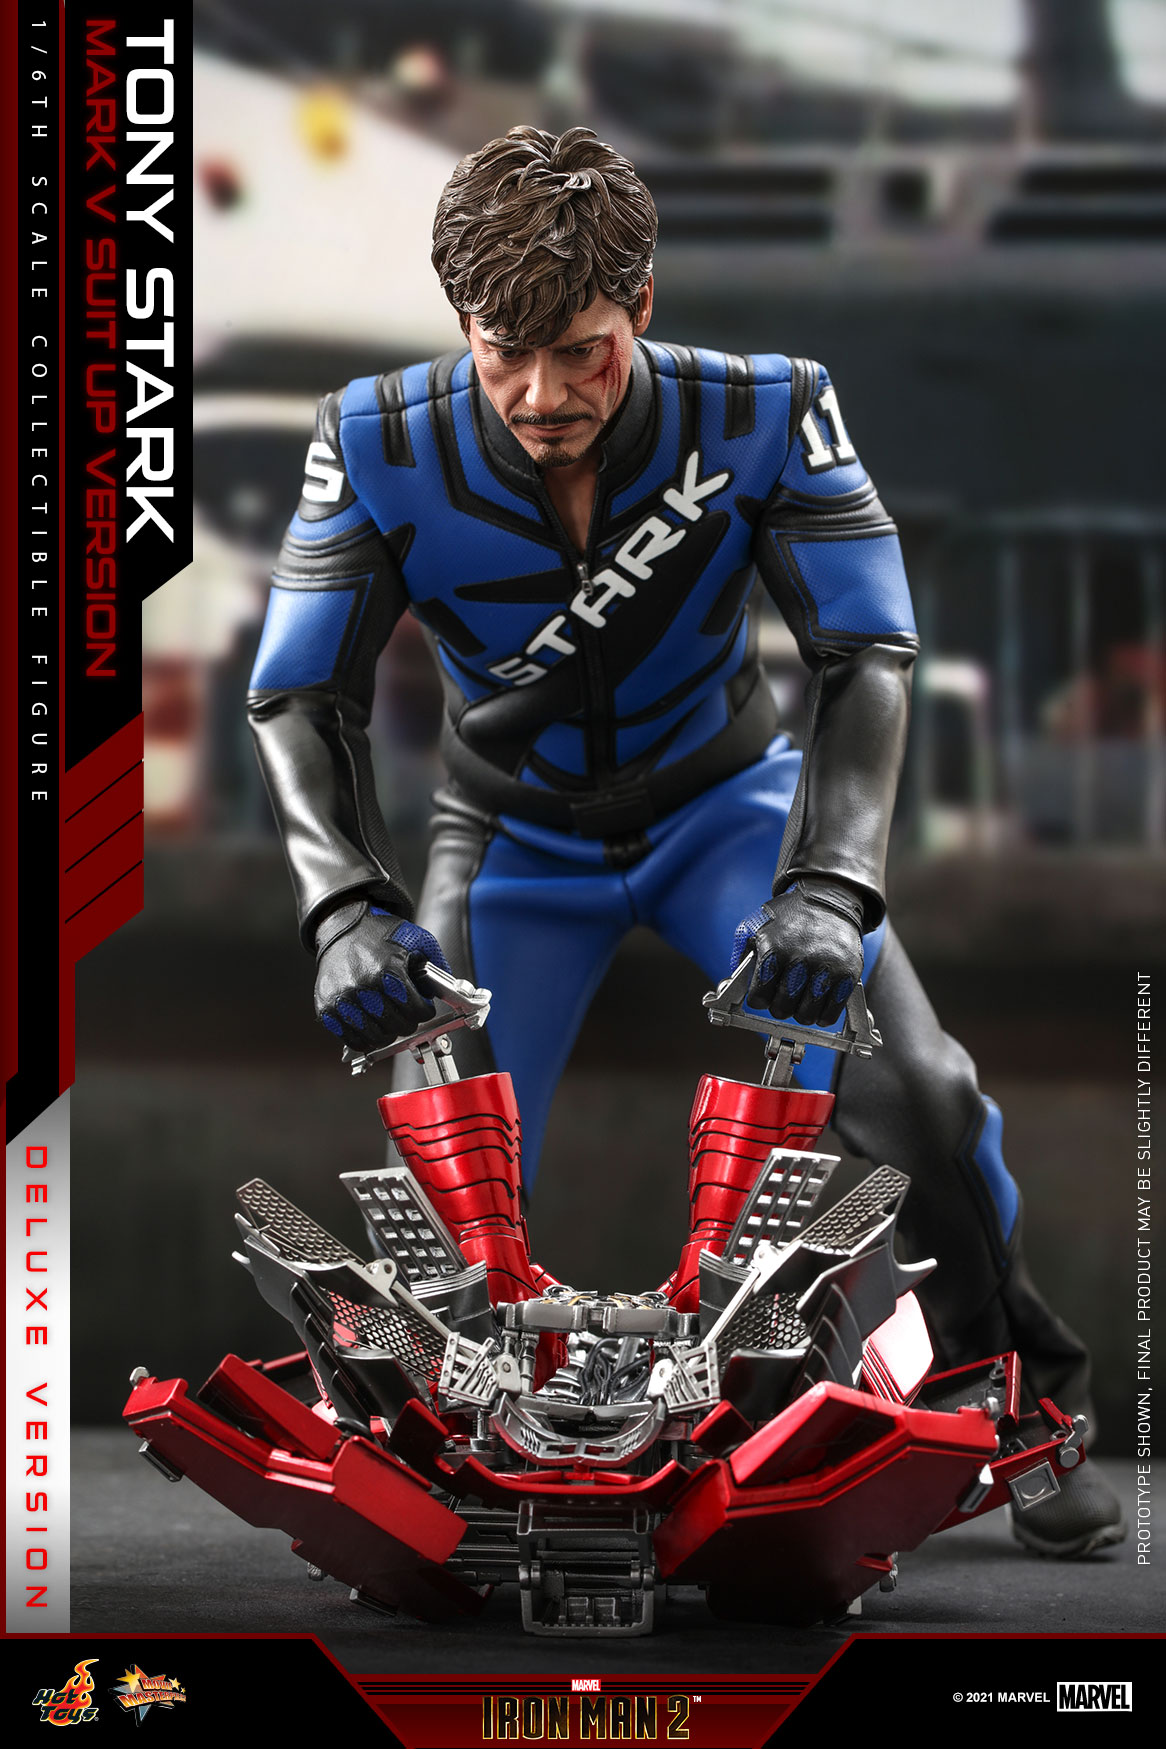 Hot Toys - IM2 - Tony Stark (Mark V Suit Up Version) collectible figure (Deluxe)_PR7